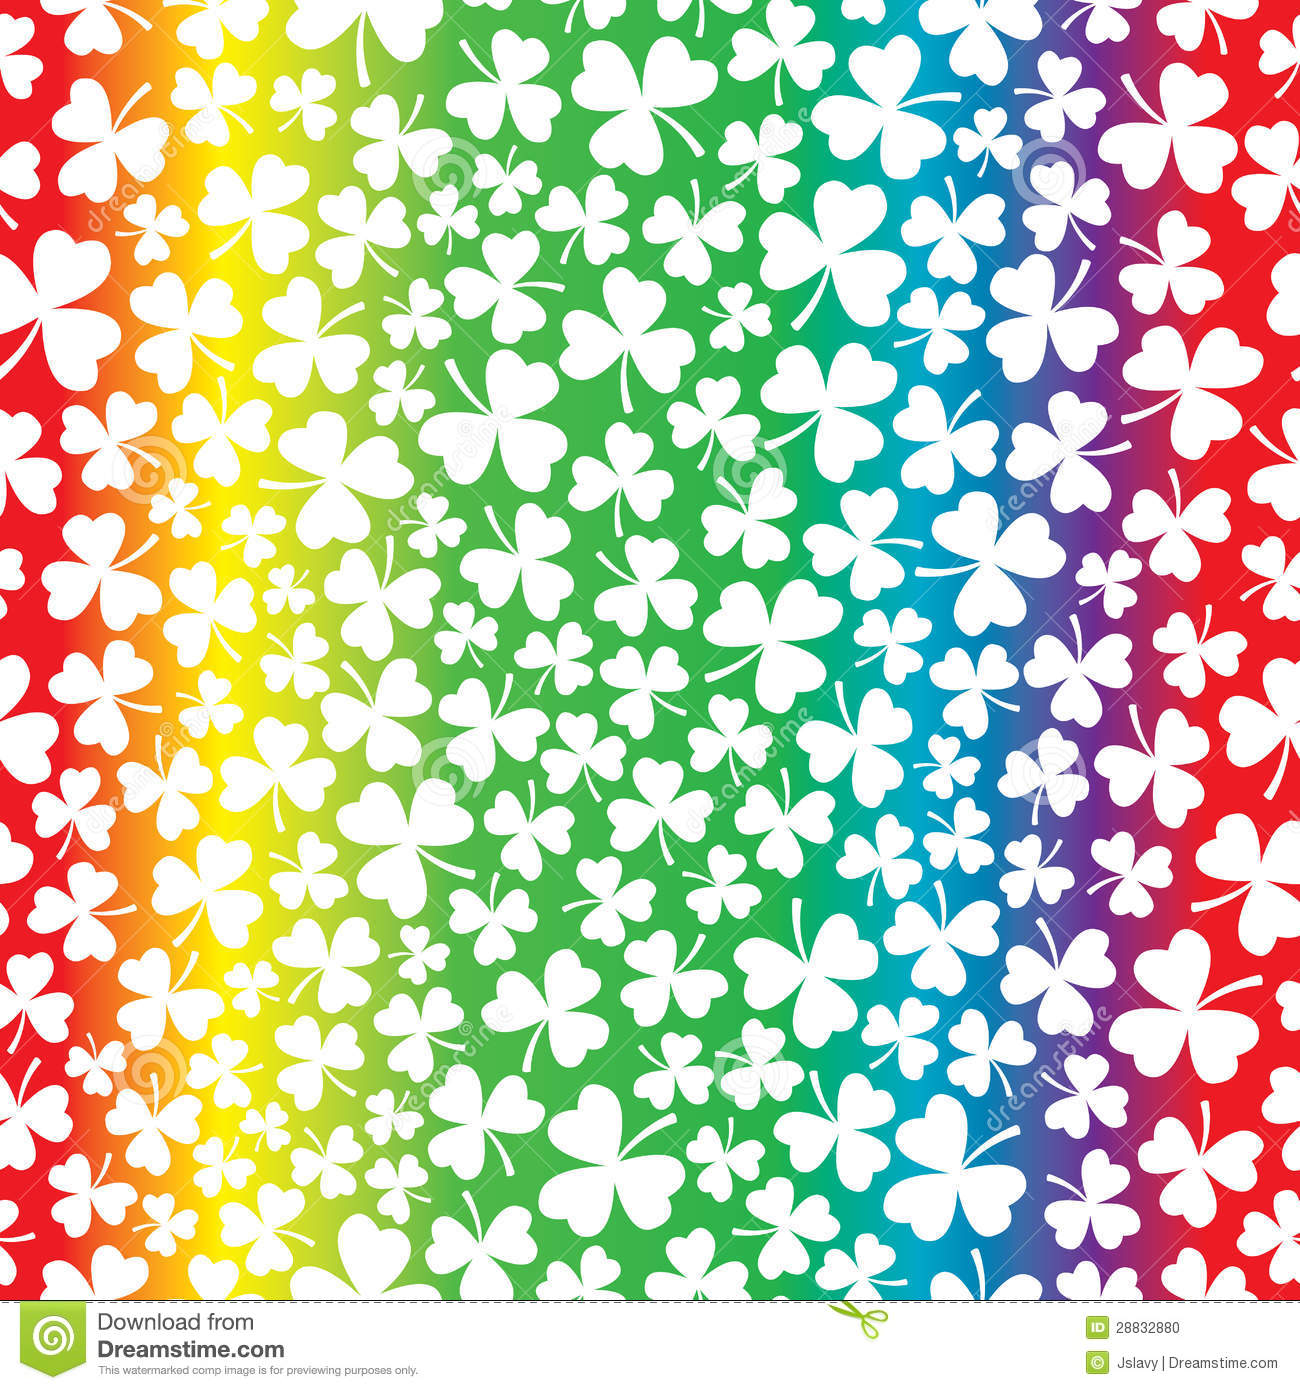 Seamless Rainbow And Shamrock Pattern Stock Photo - Image: 28832880